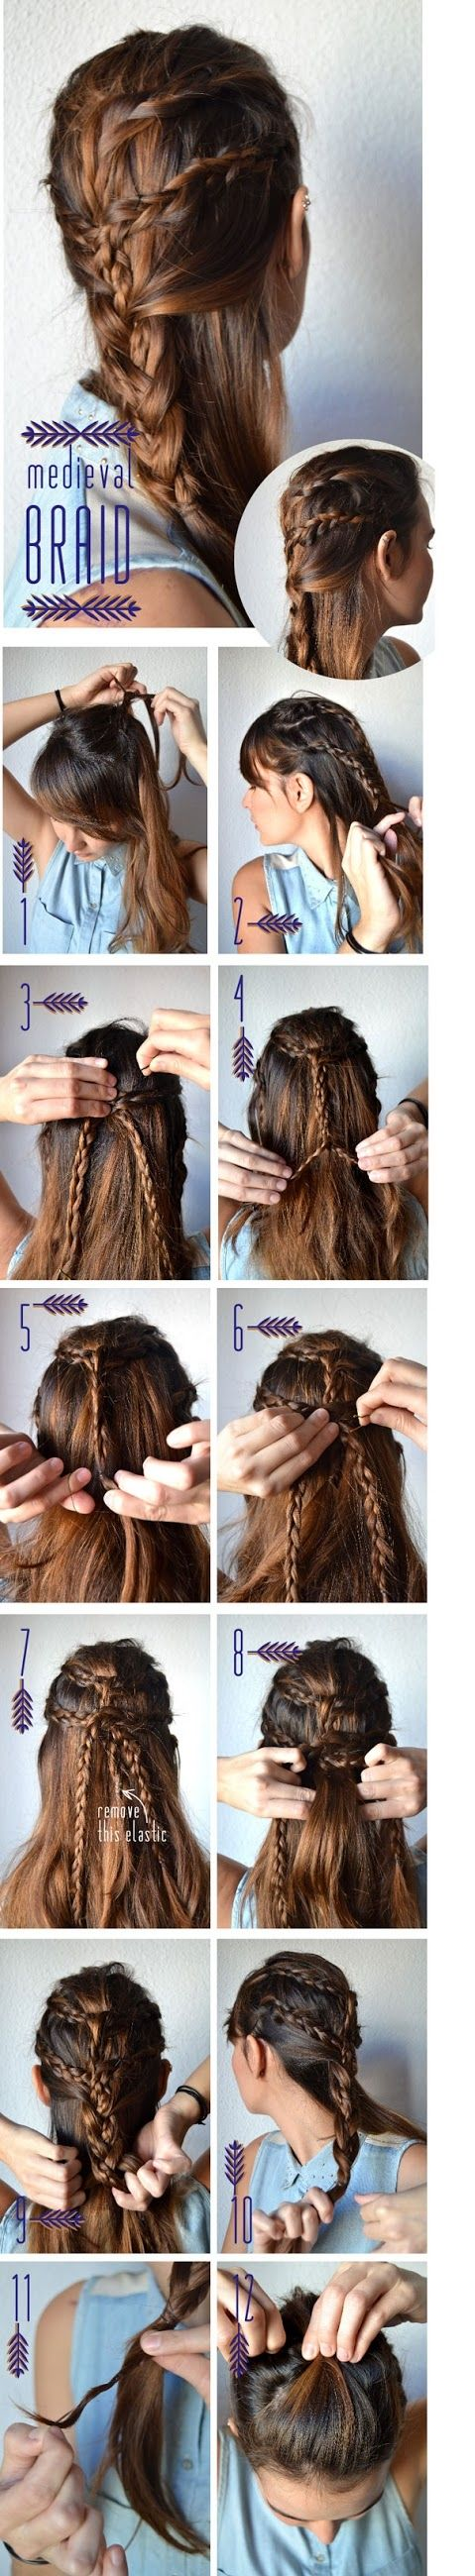 best style your hair images on pinterest hairstyle ideas cute